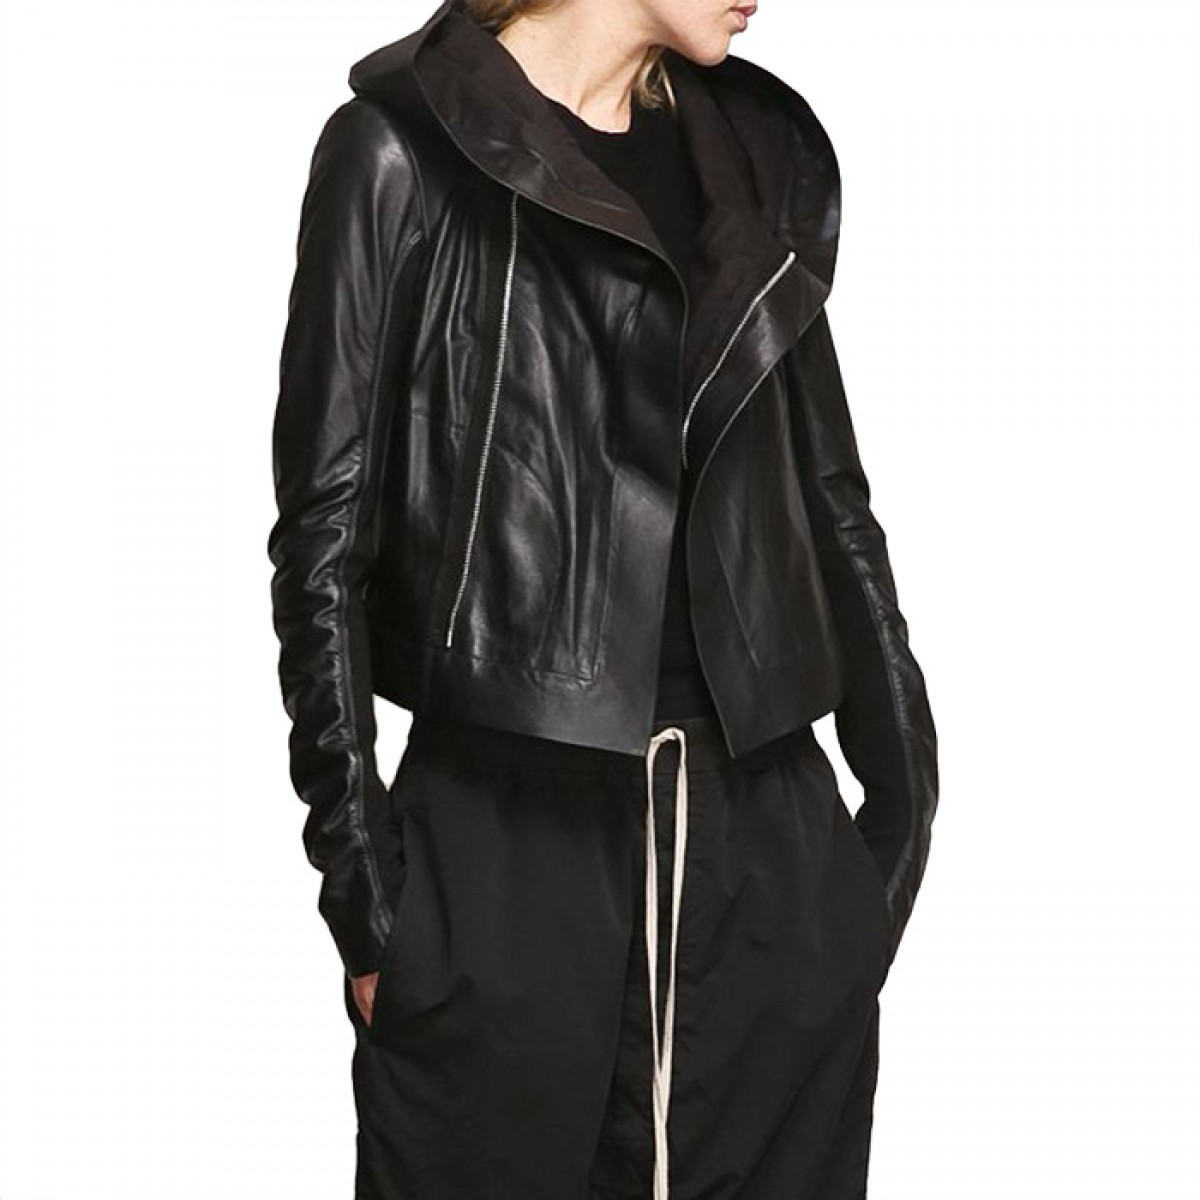 Womens Hooded Leather Jacket | LATICCI